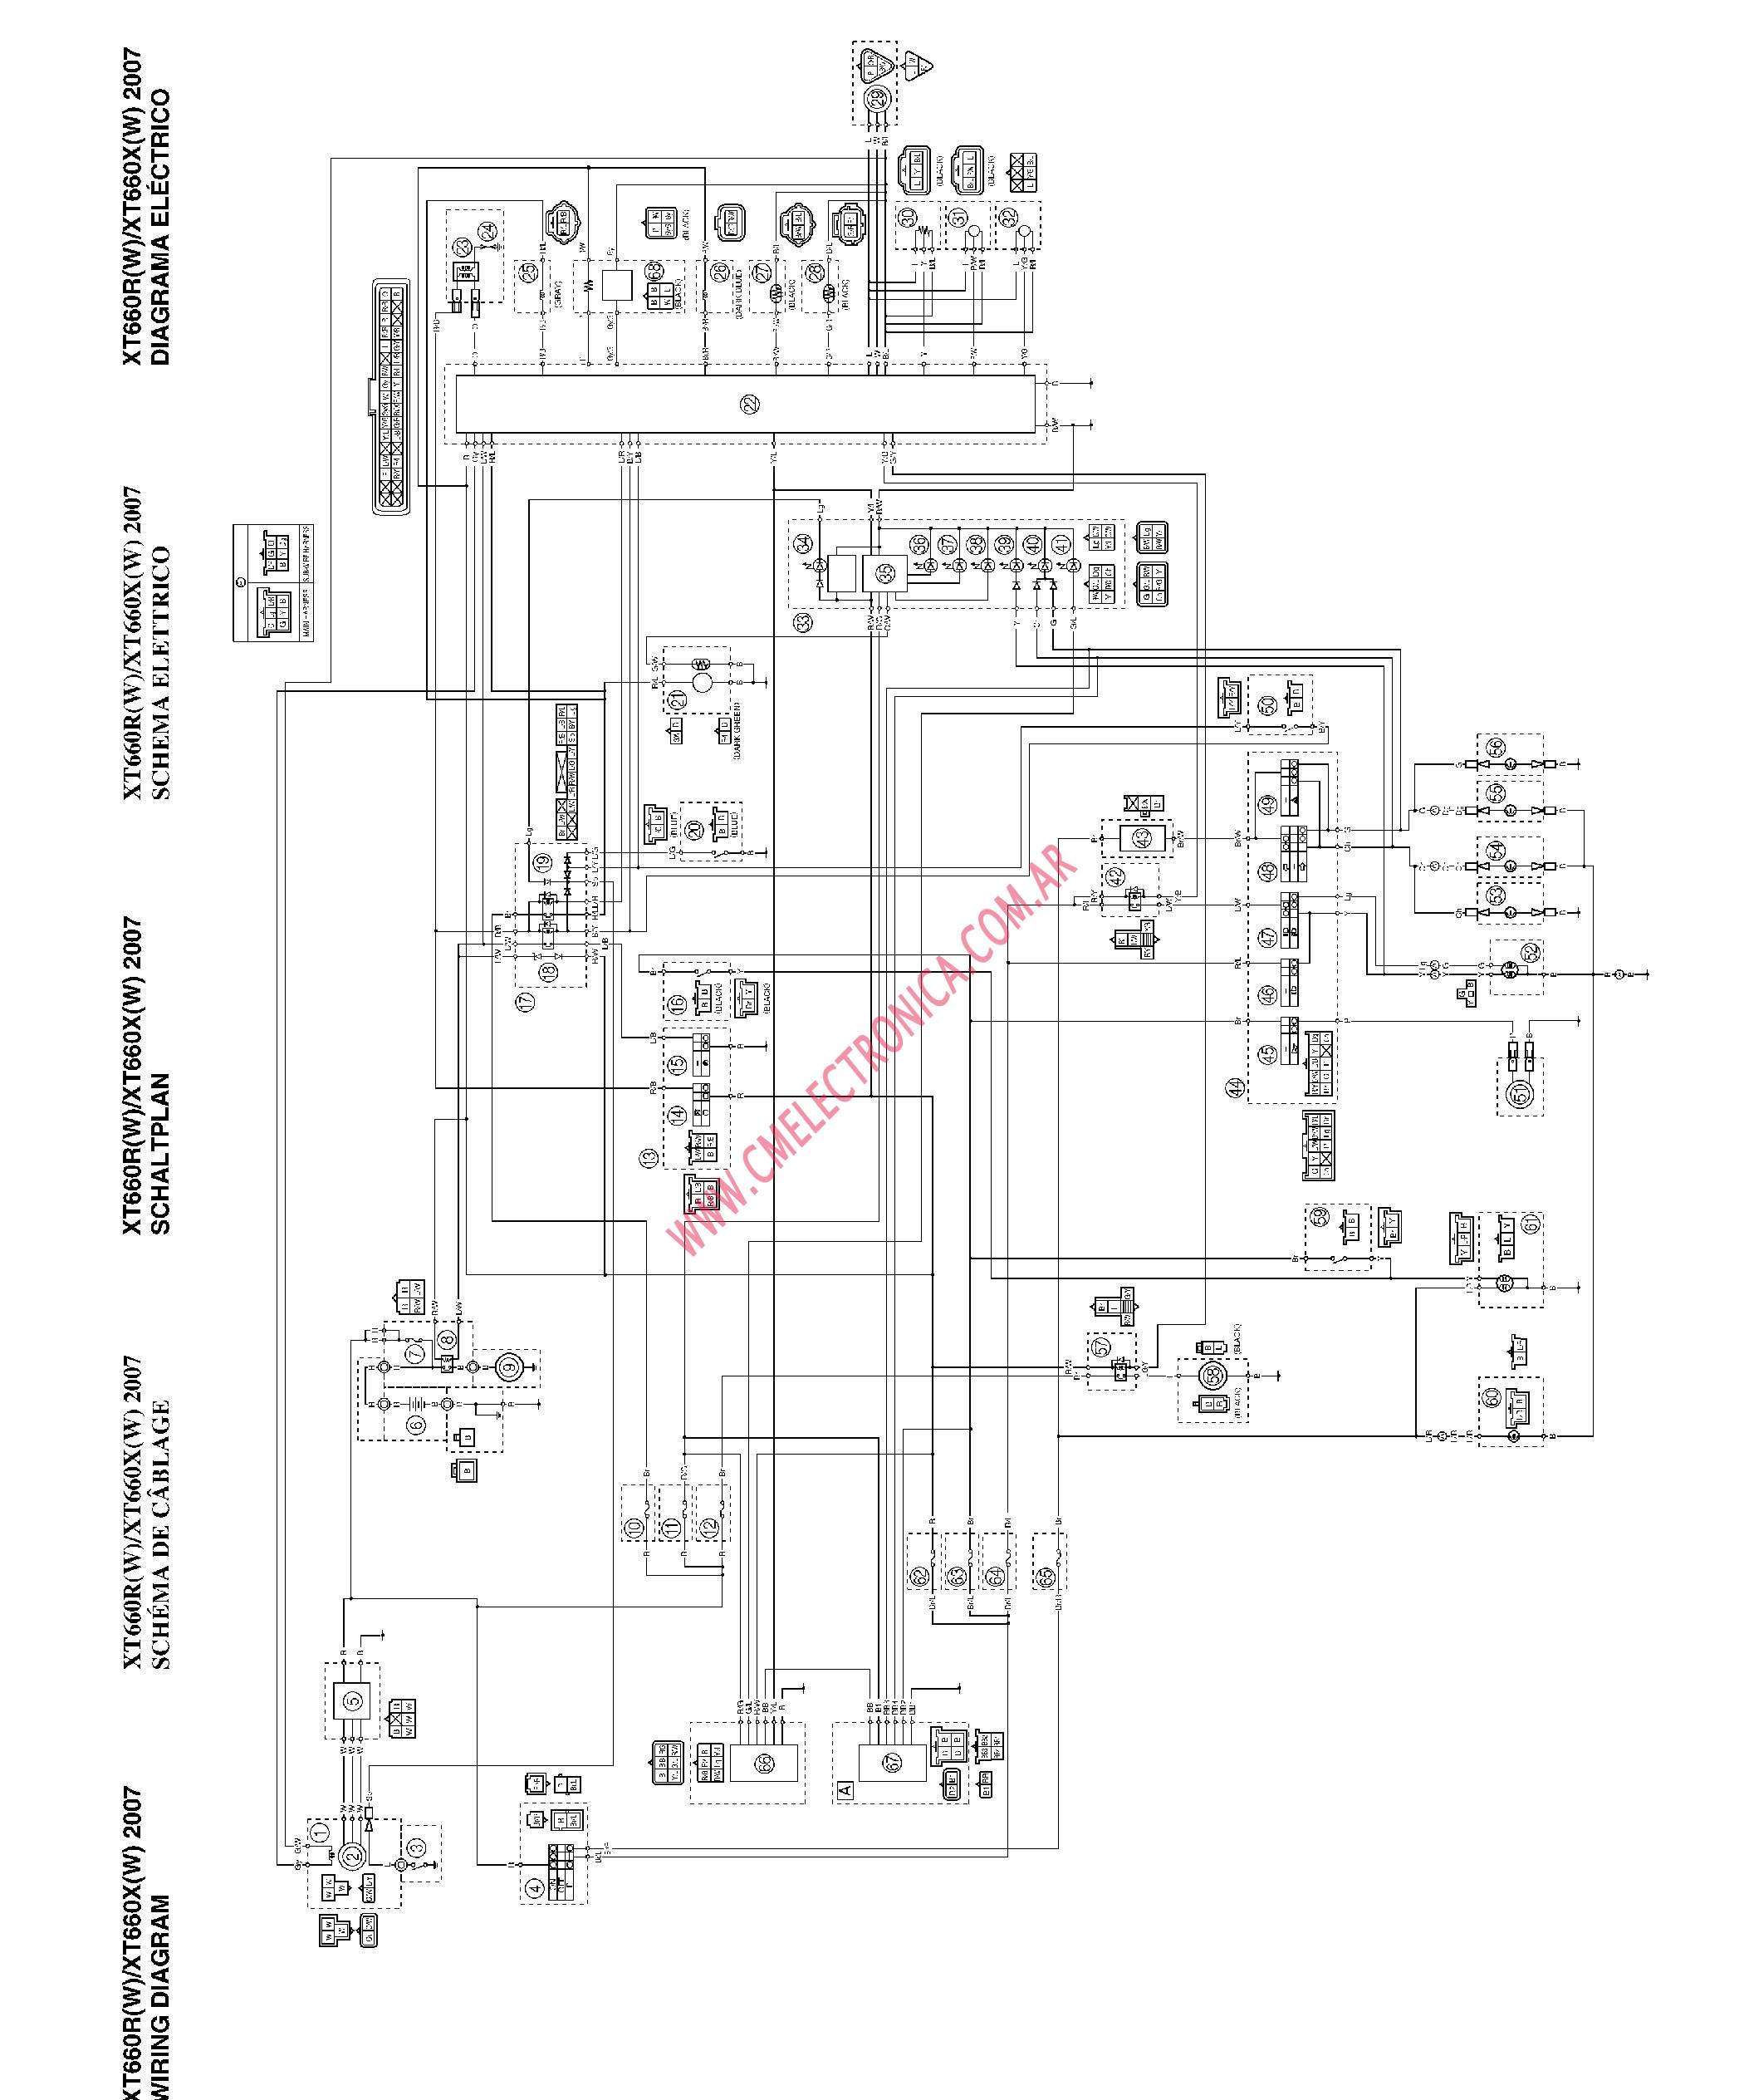 small resolution of vbb wiring diagram schematic diagrams vespa p125x wiring diagram vespa vbb wiring diagram